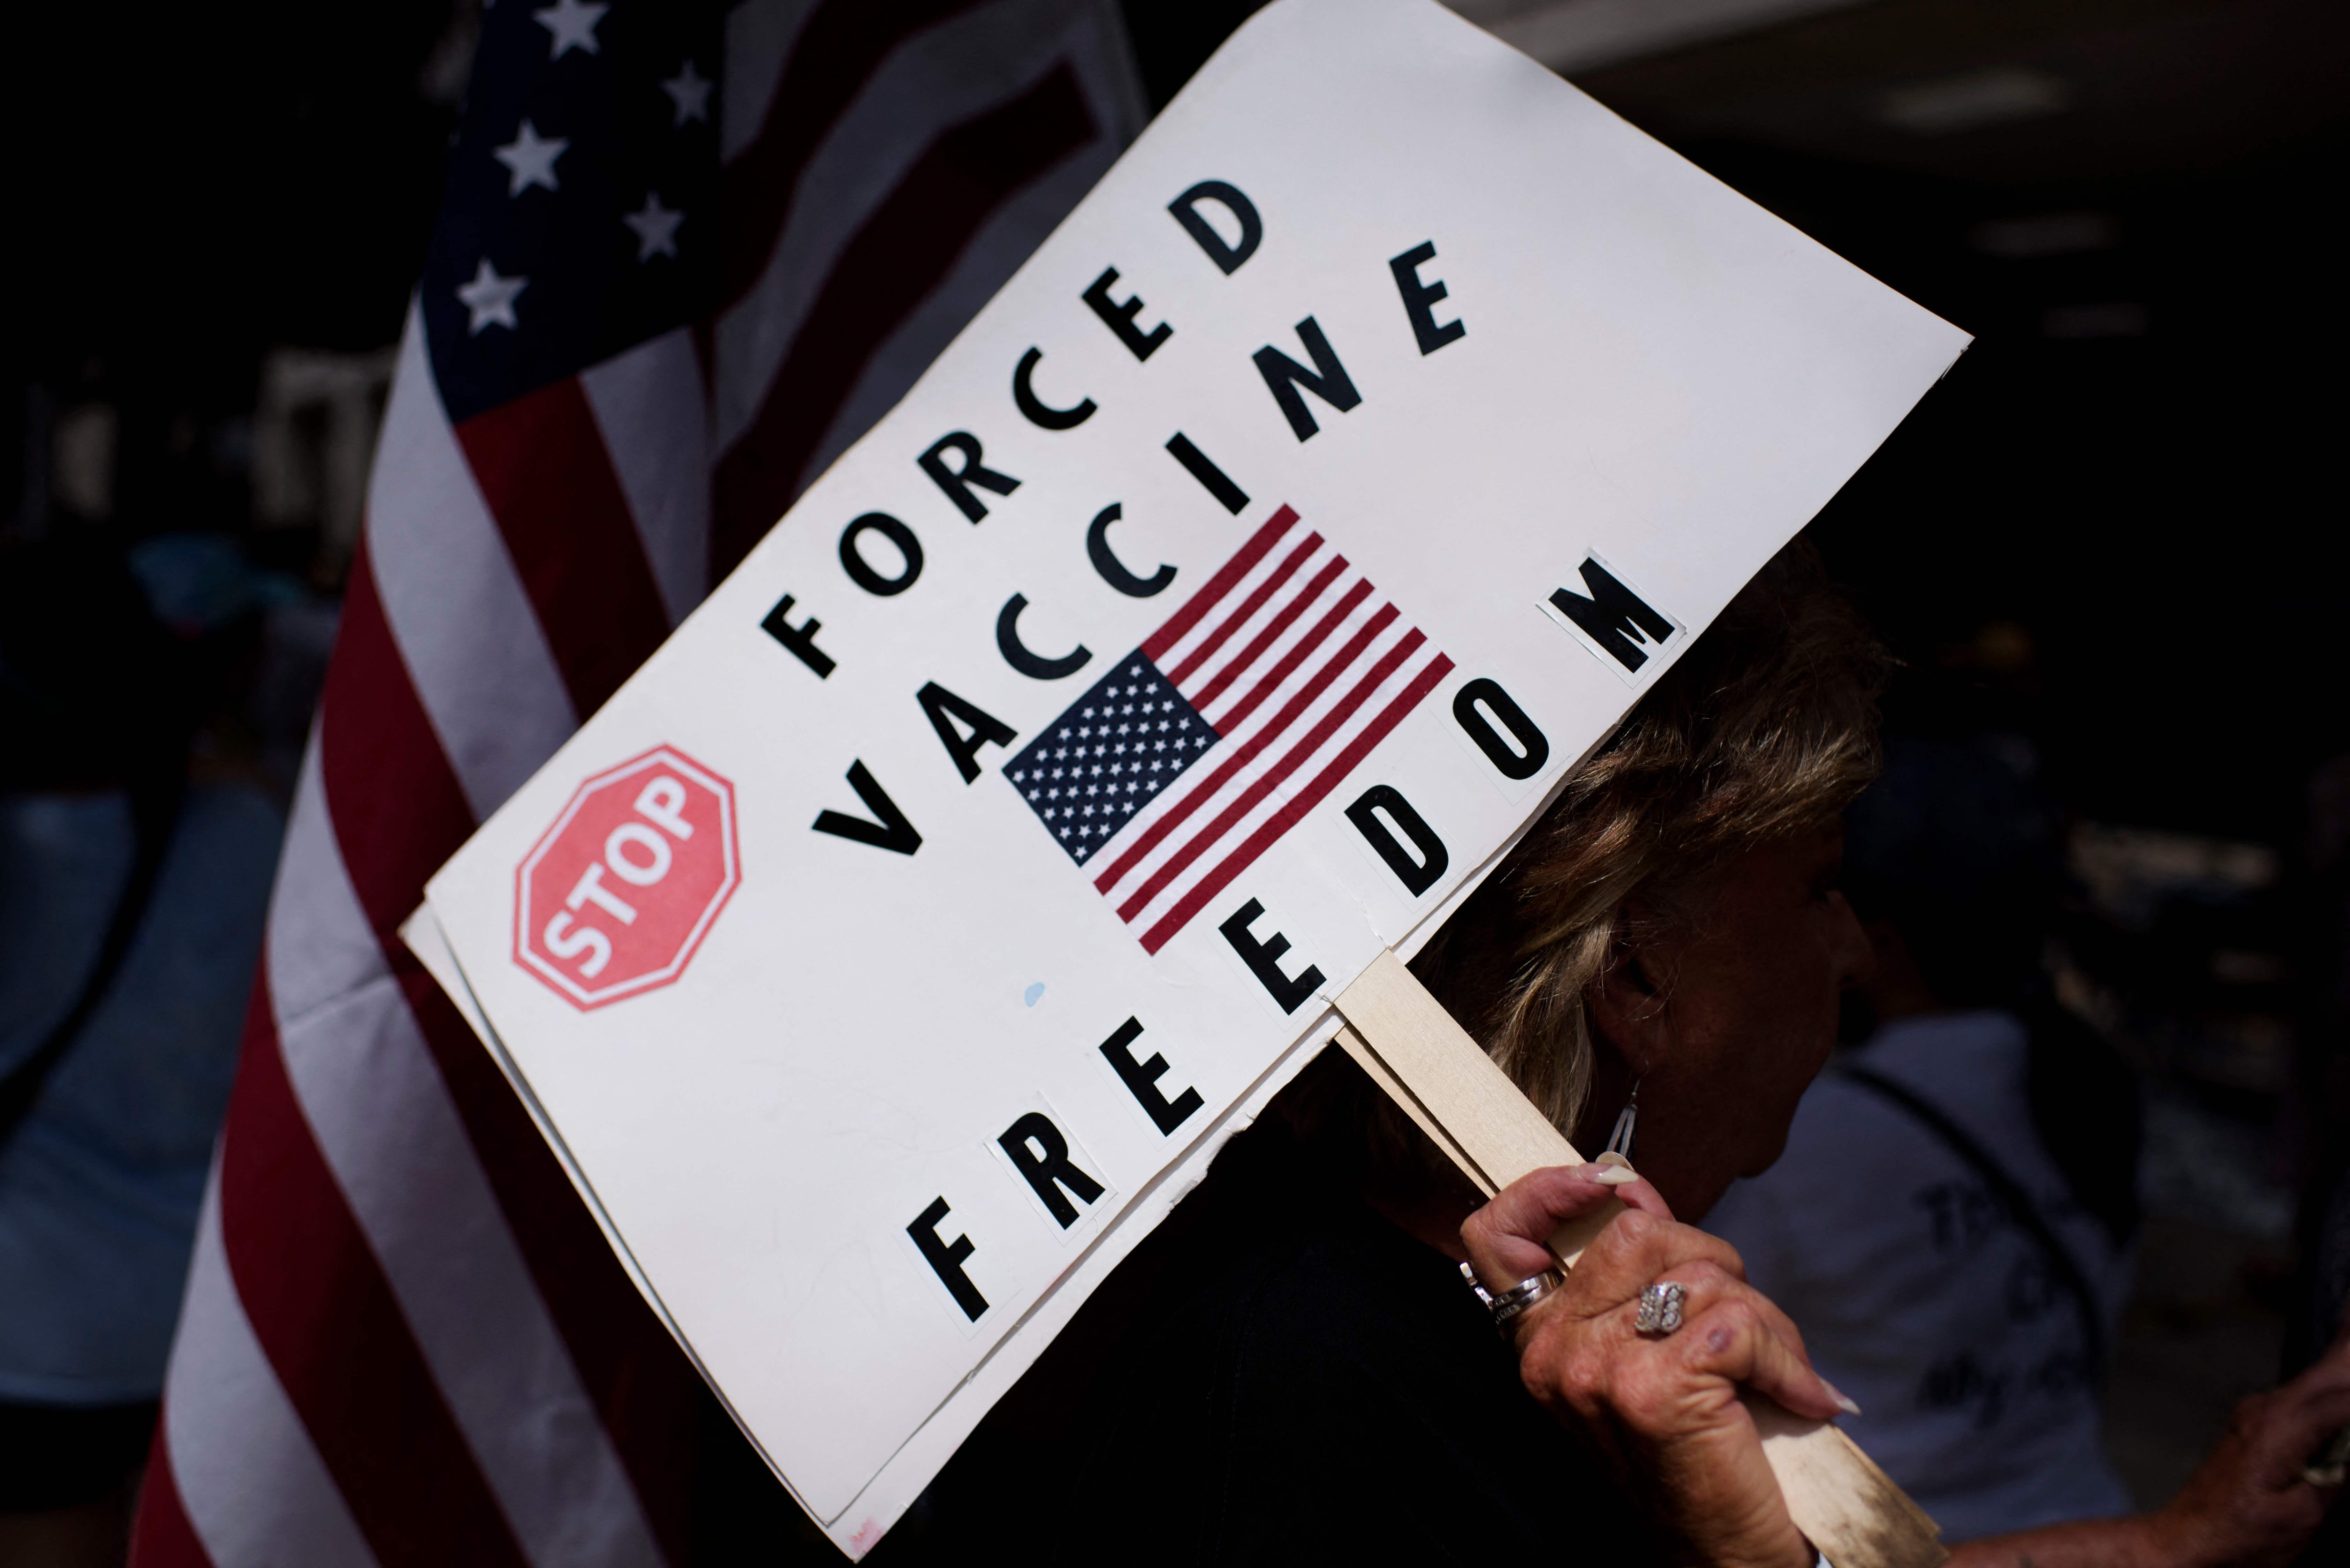 The days of vaccine lotteries are waning. Here come the mandates.